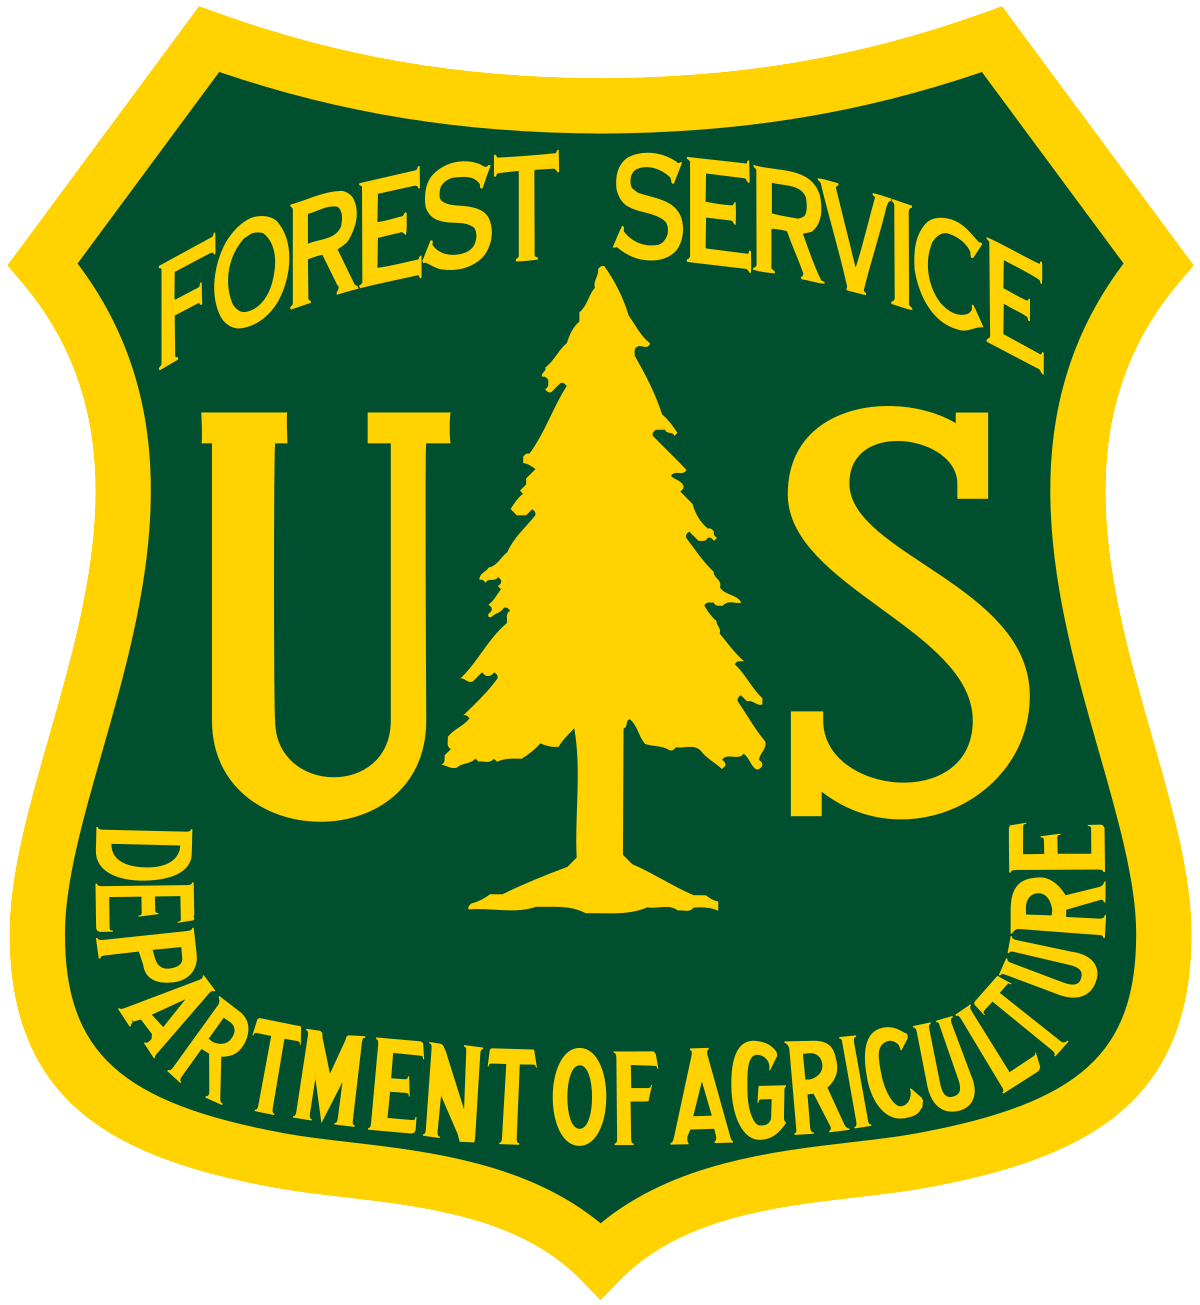 environmental and field biology National Forestry Service logo